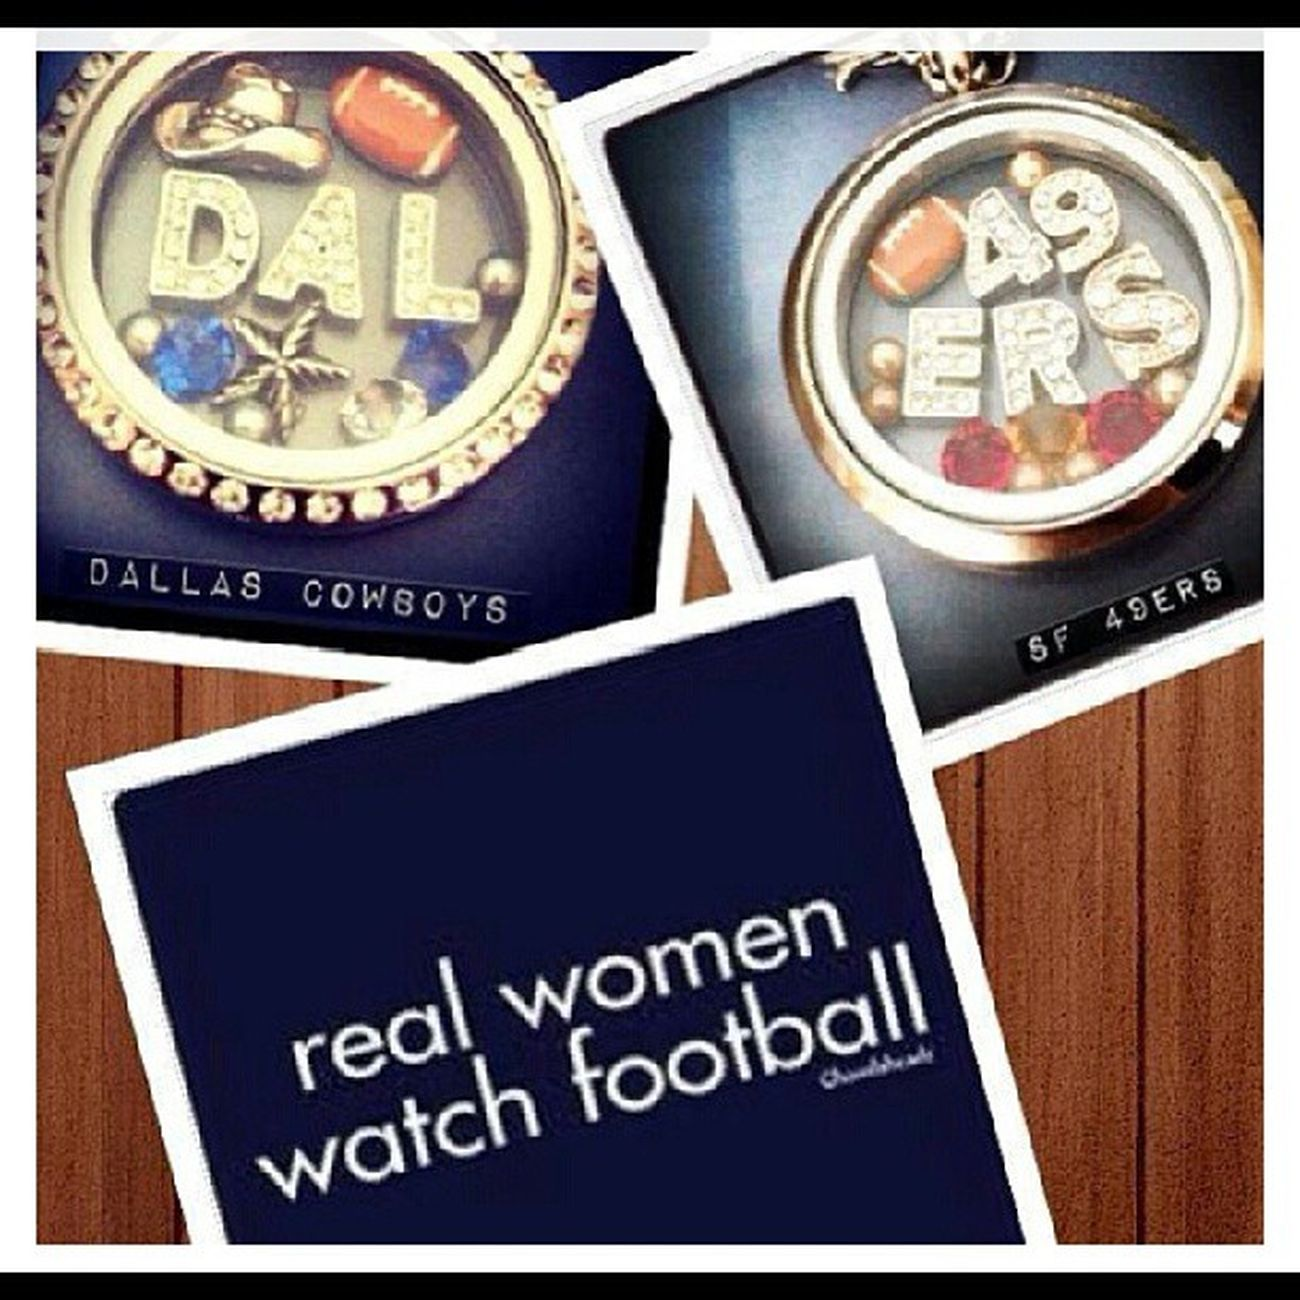 Indeed us real women do @leibleulockets!!! And a week from today I'll be watching my Cowboys win :-) ♥ Dallascowboys Cowboys HowBoutThemCowboys GoDallas GoCowboys CowboysAllDay DallasAllDay CowboysNation BeastOfTheEast BeastOfTheNFCEast RealWomenWatchFootball